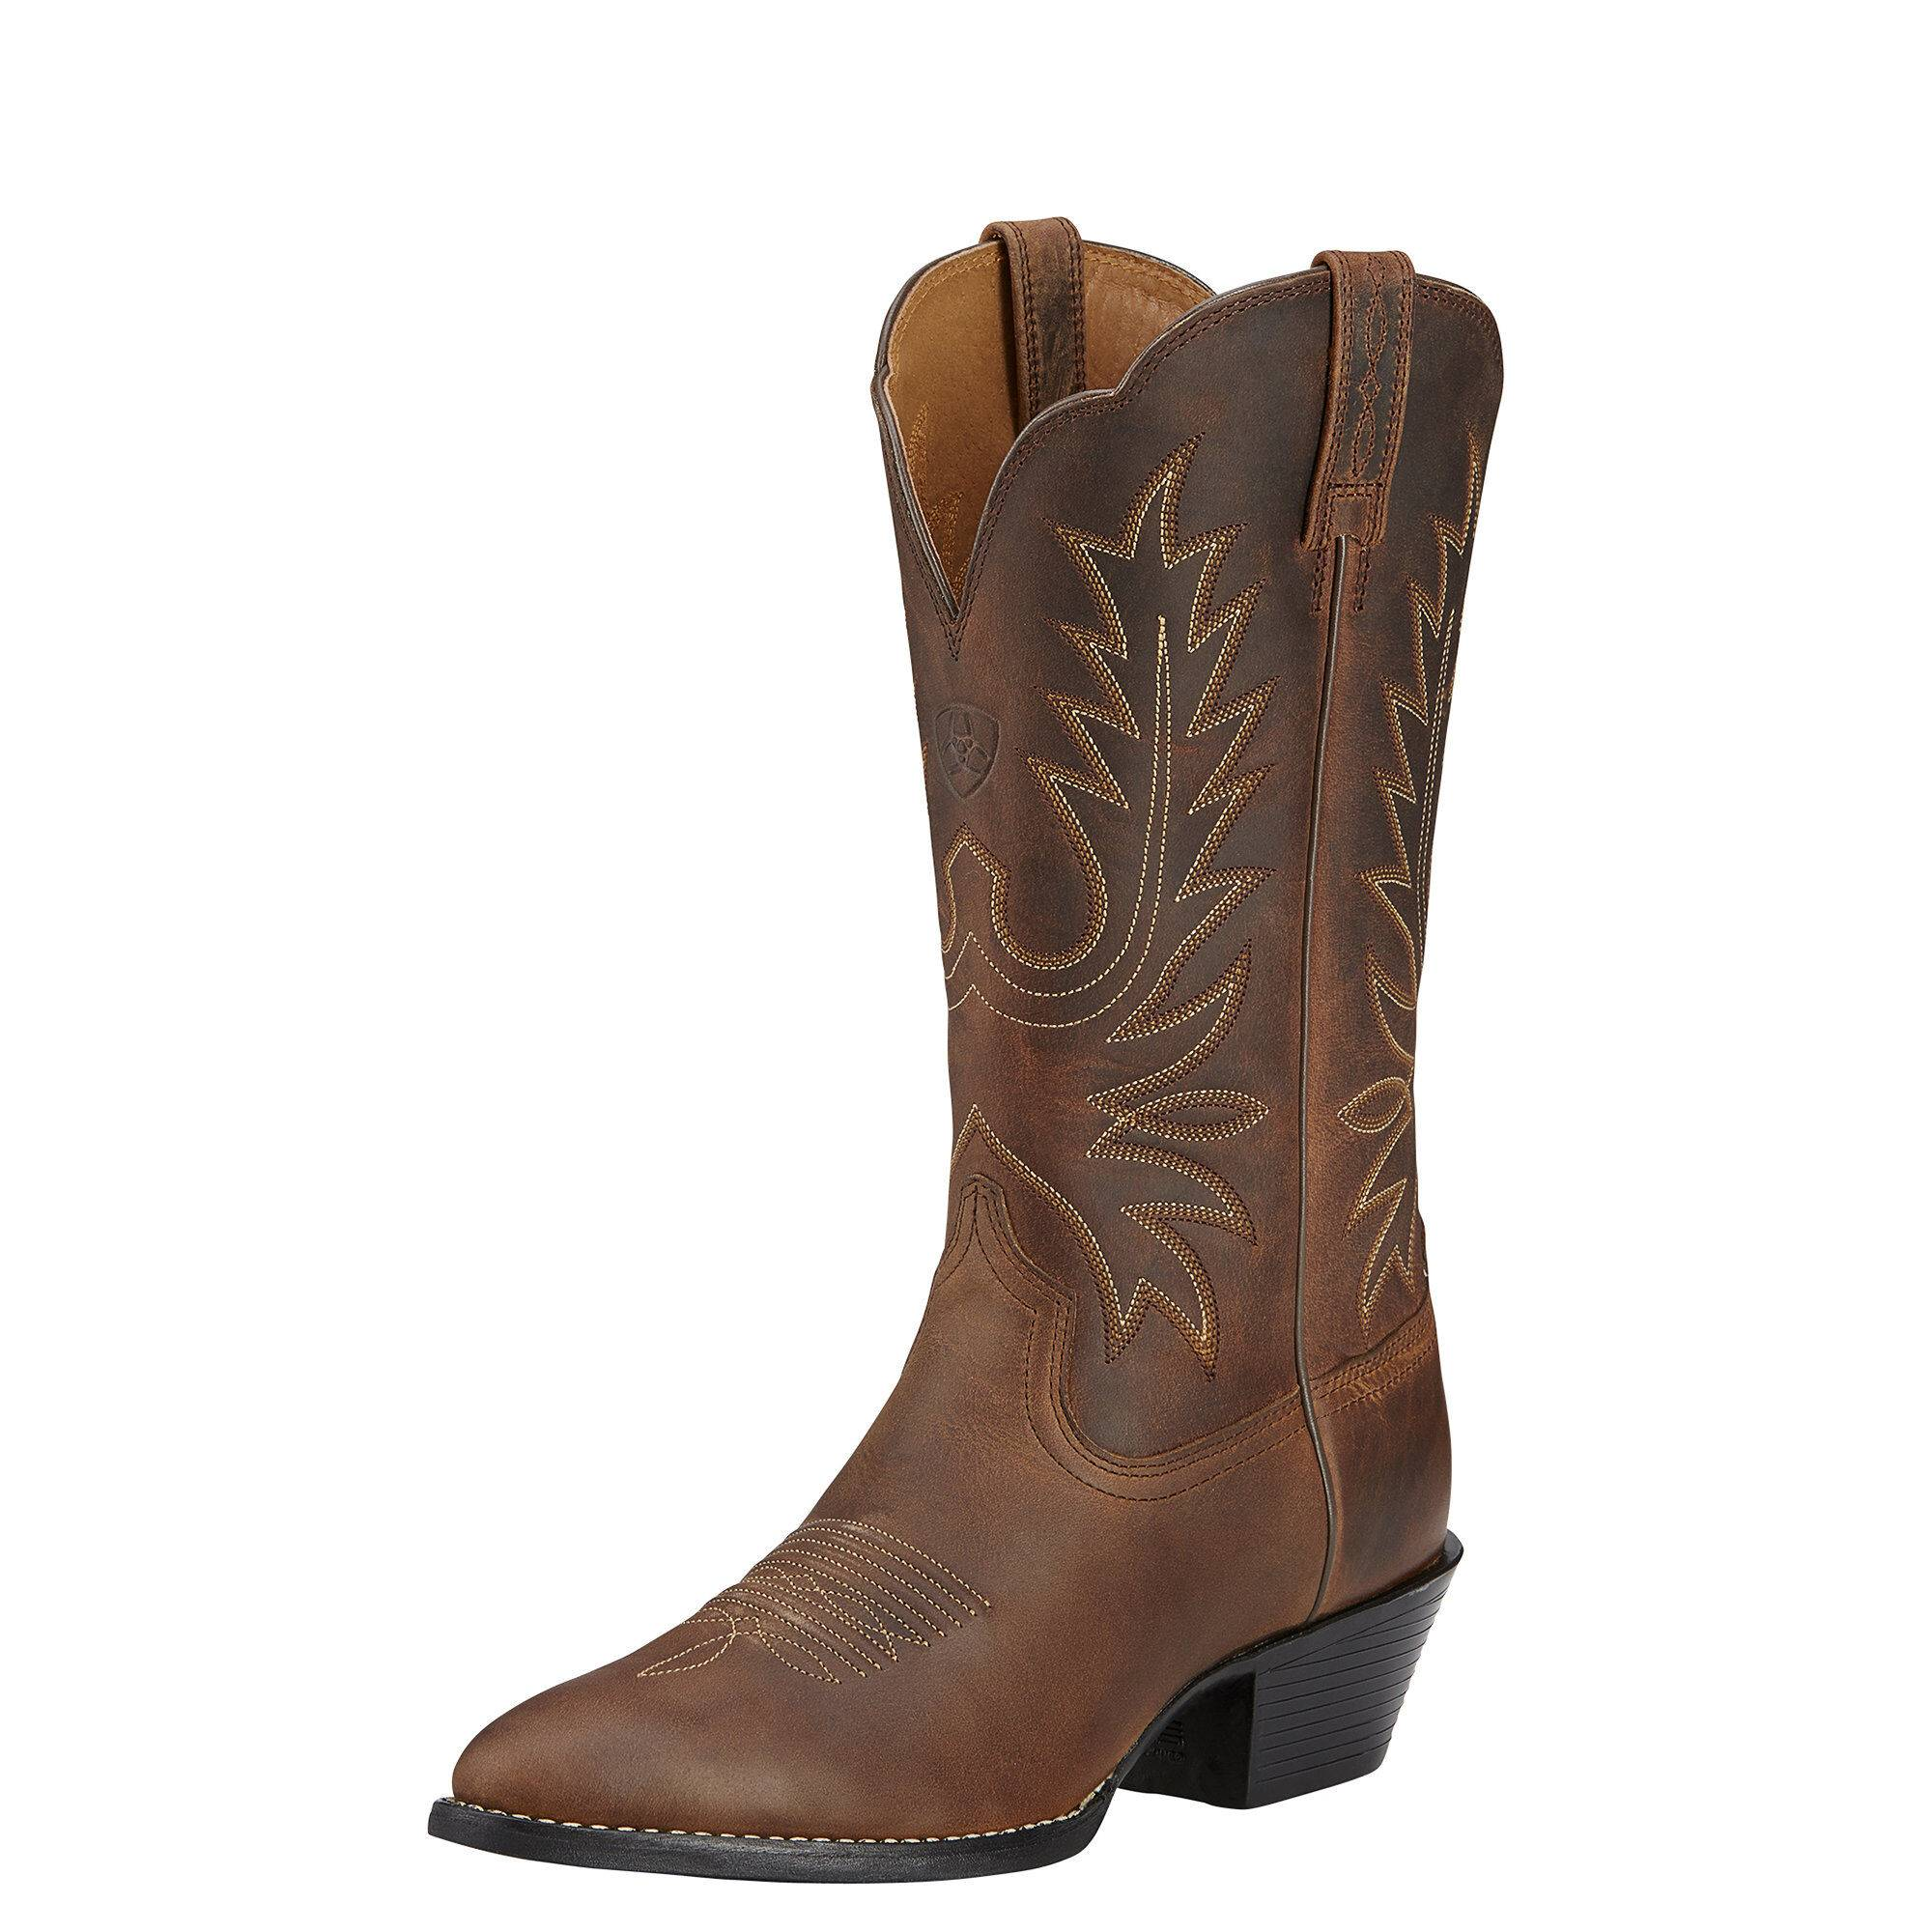 Ariat Women's Heritage R Toe Western Boots in Distressed Brown, Size 5.5 B / Medium by Ariat